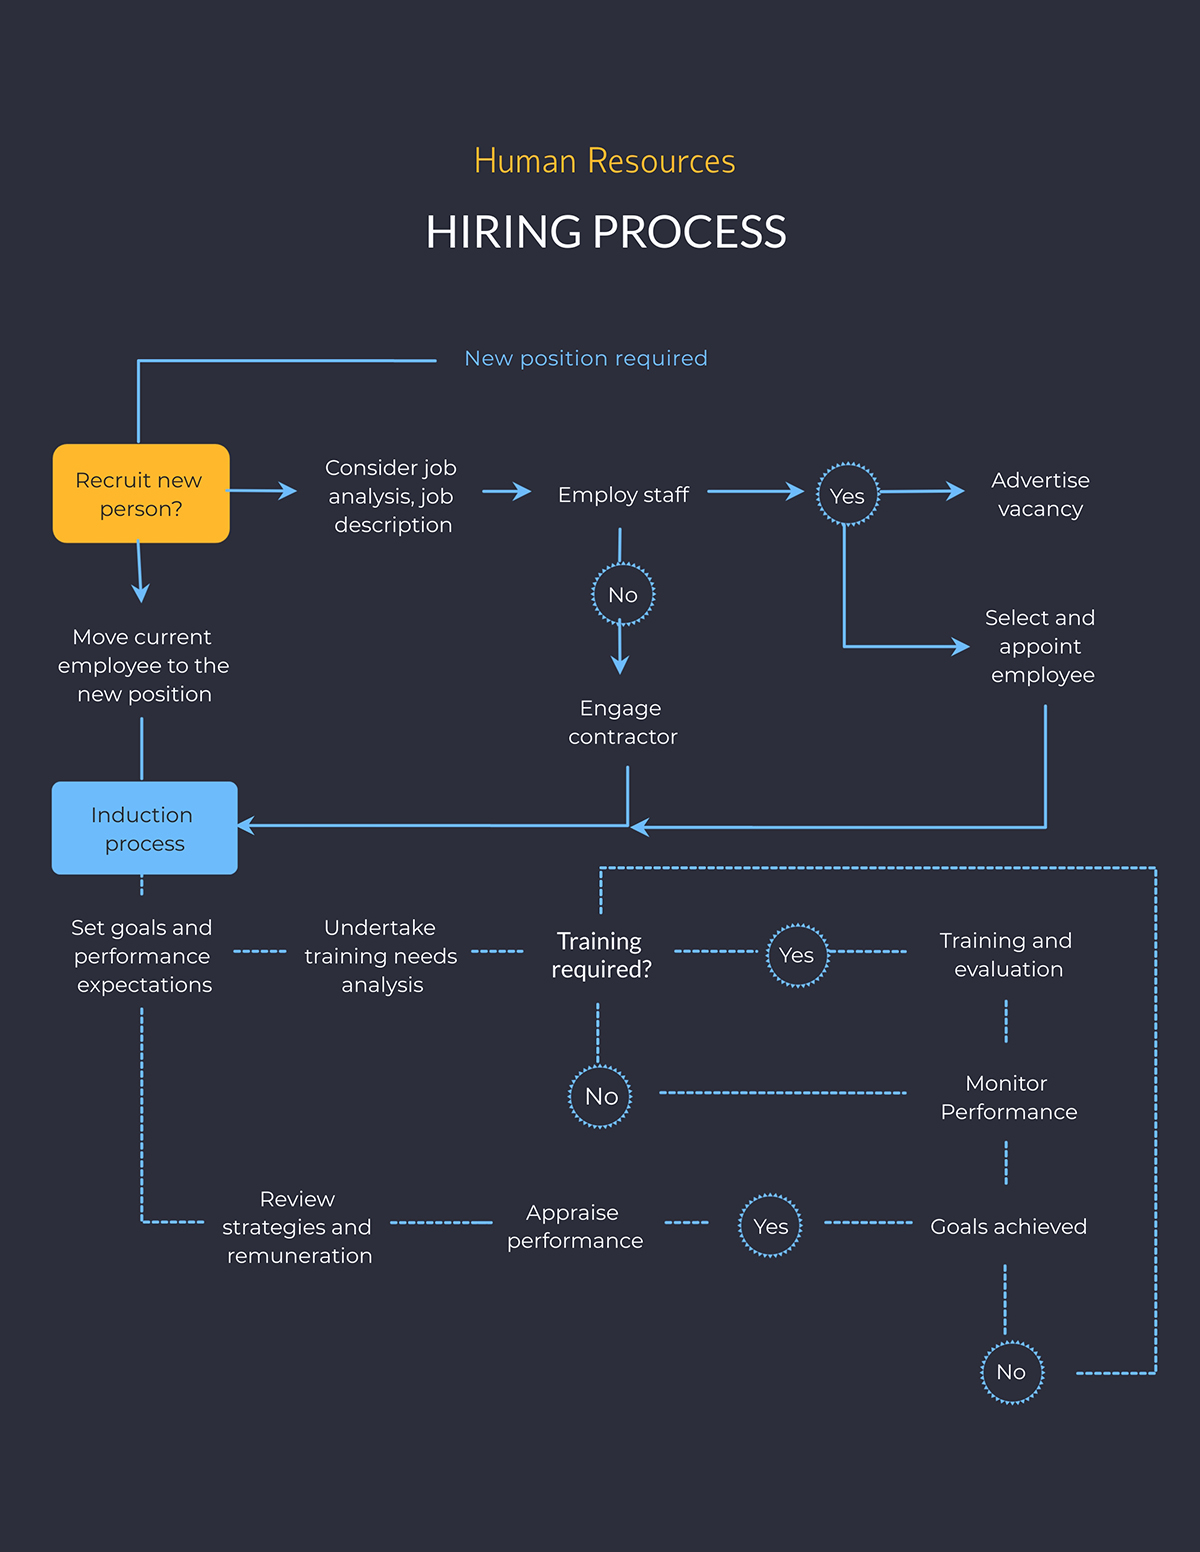 A hiring process flowchart template available in Visme.